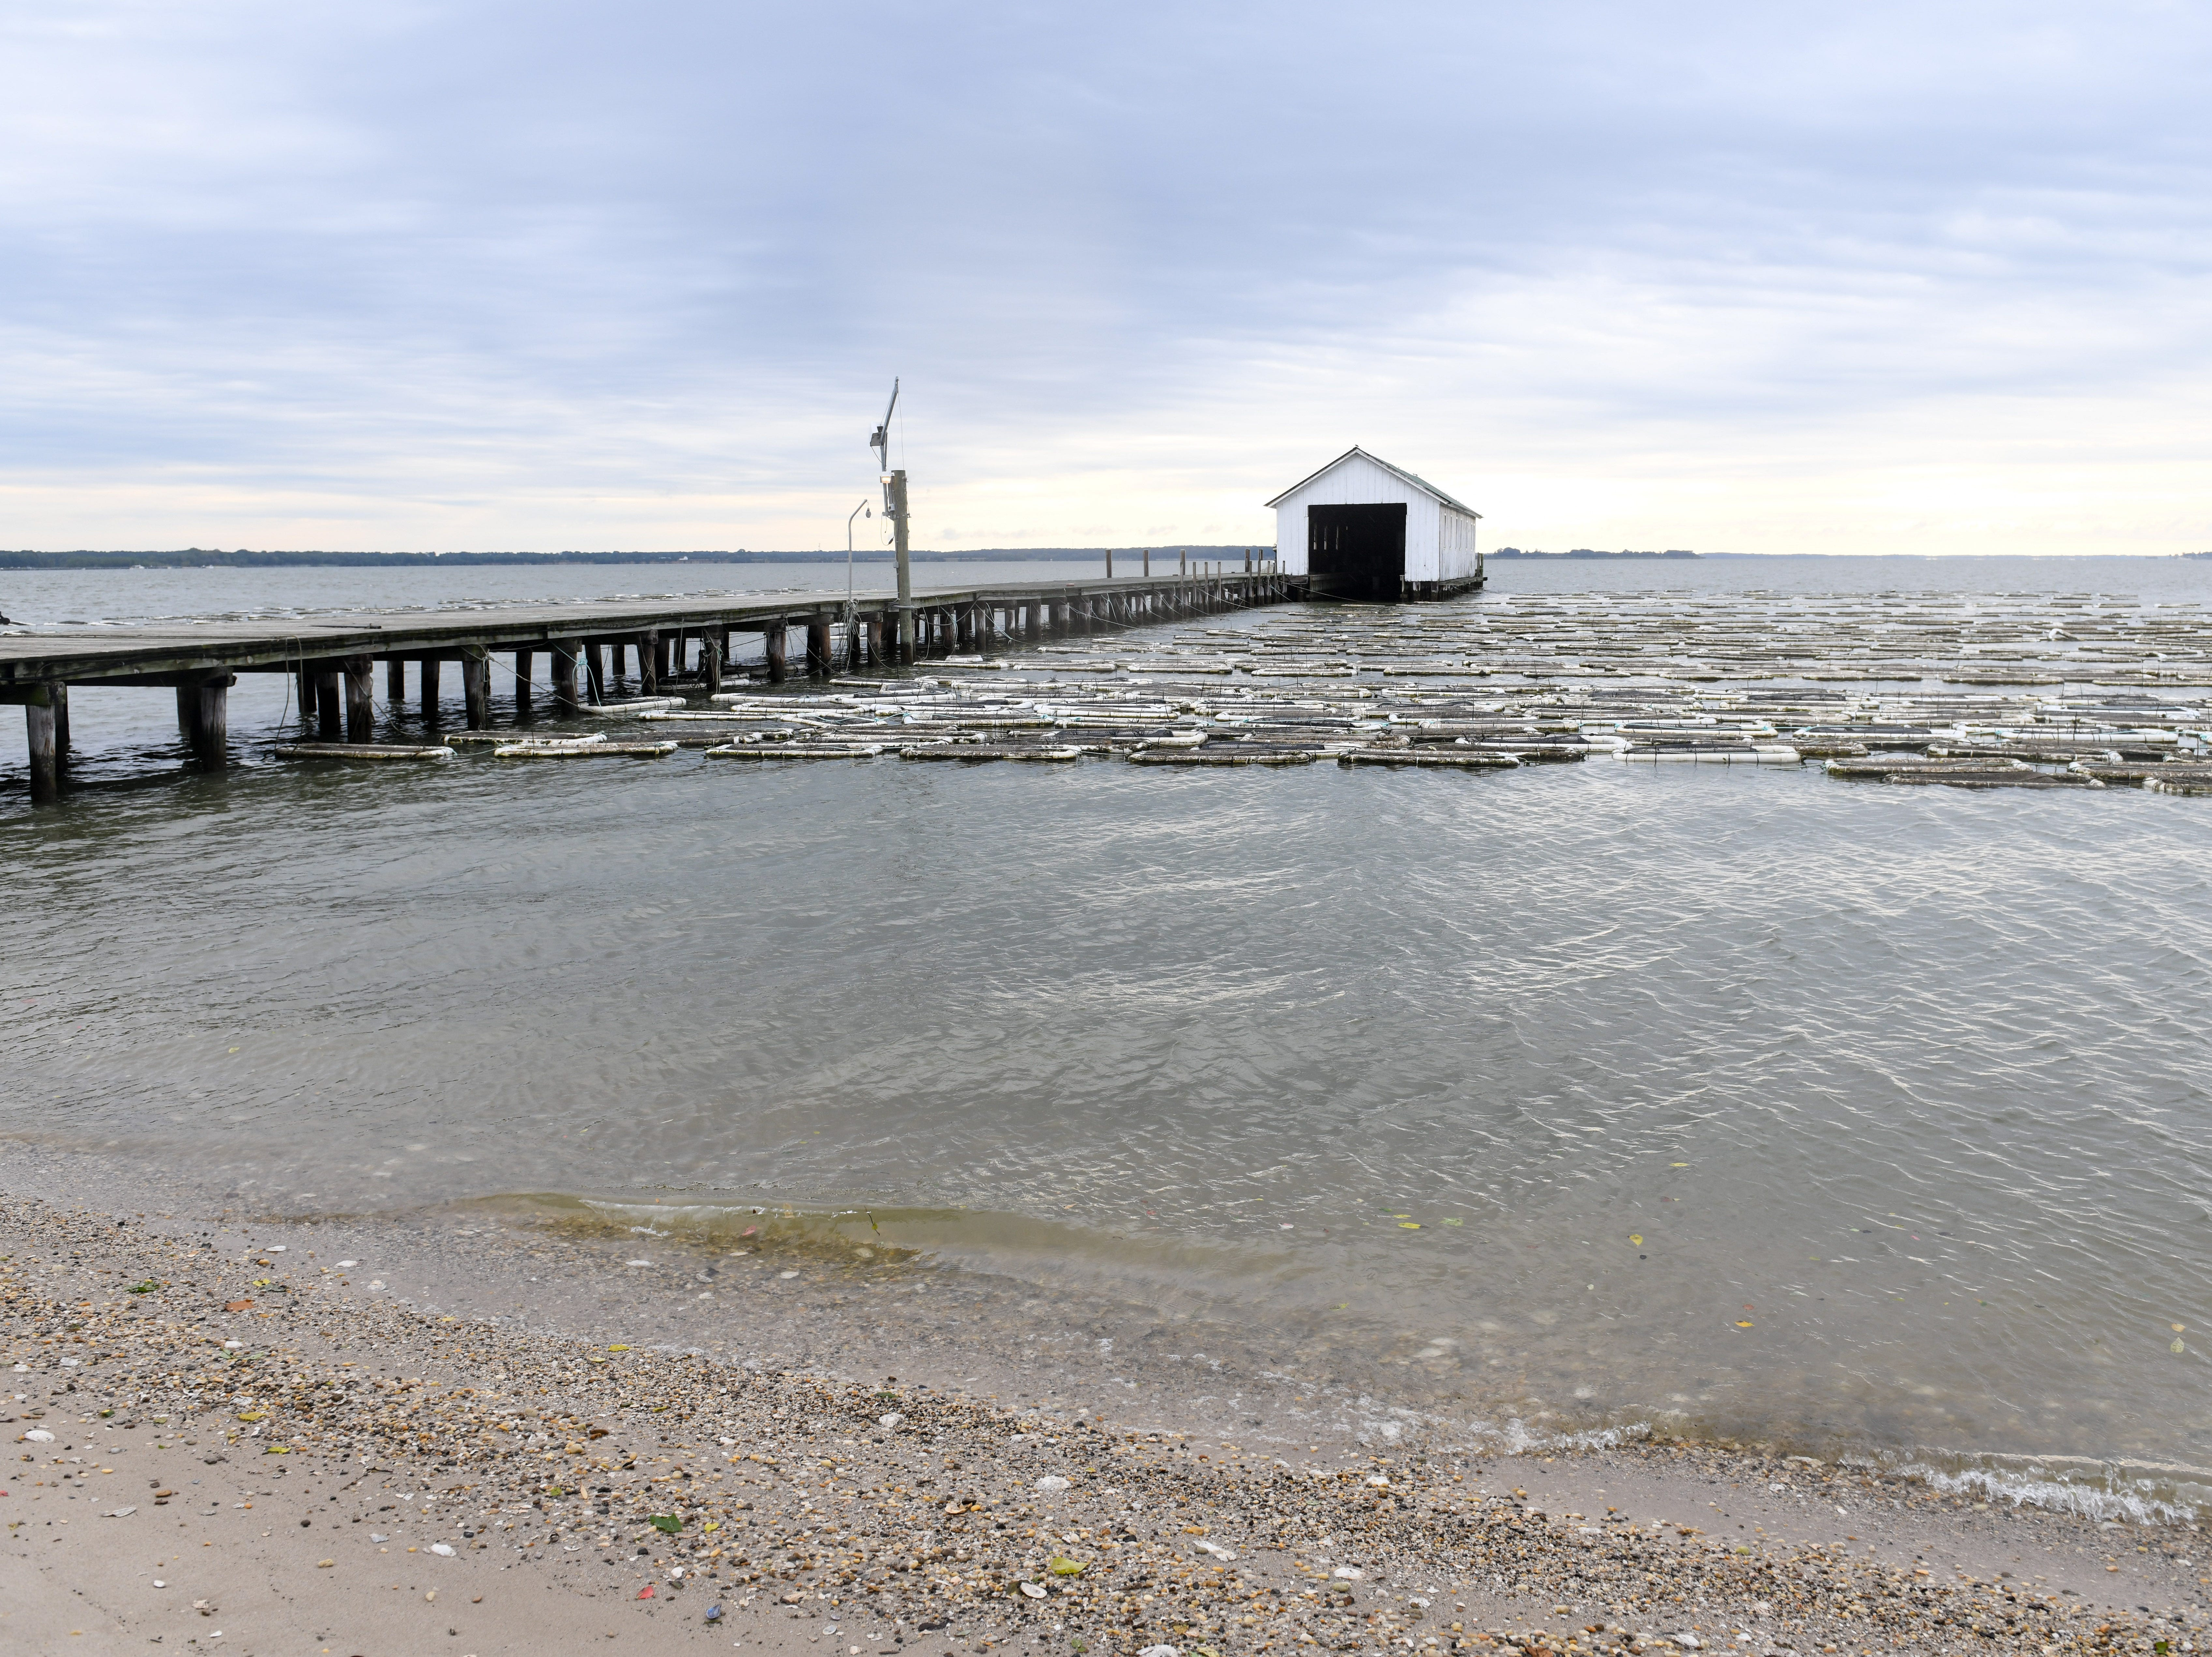 Oyster floats handmade by the Choptank Oyster Company sit on the surface of the Chesapeake Bay near Cambridge on Thursday, Sept 27, 2018.